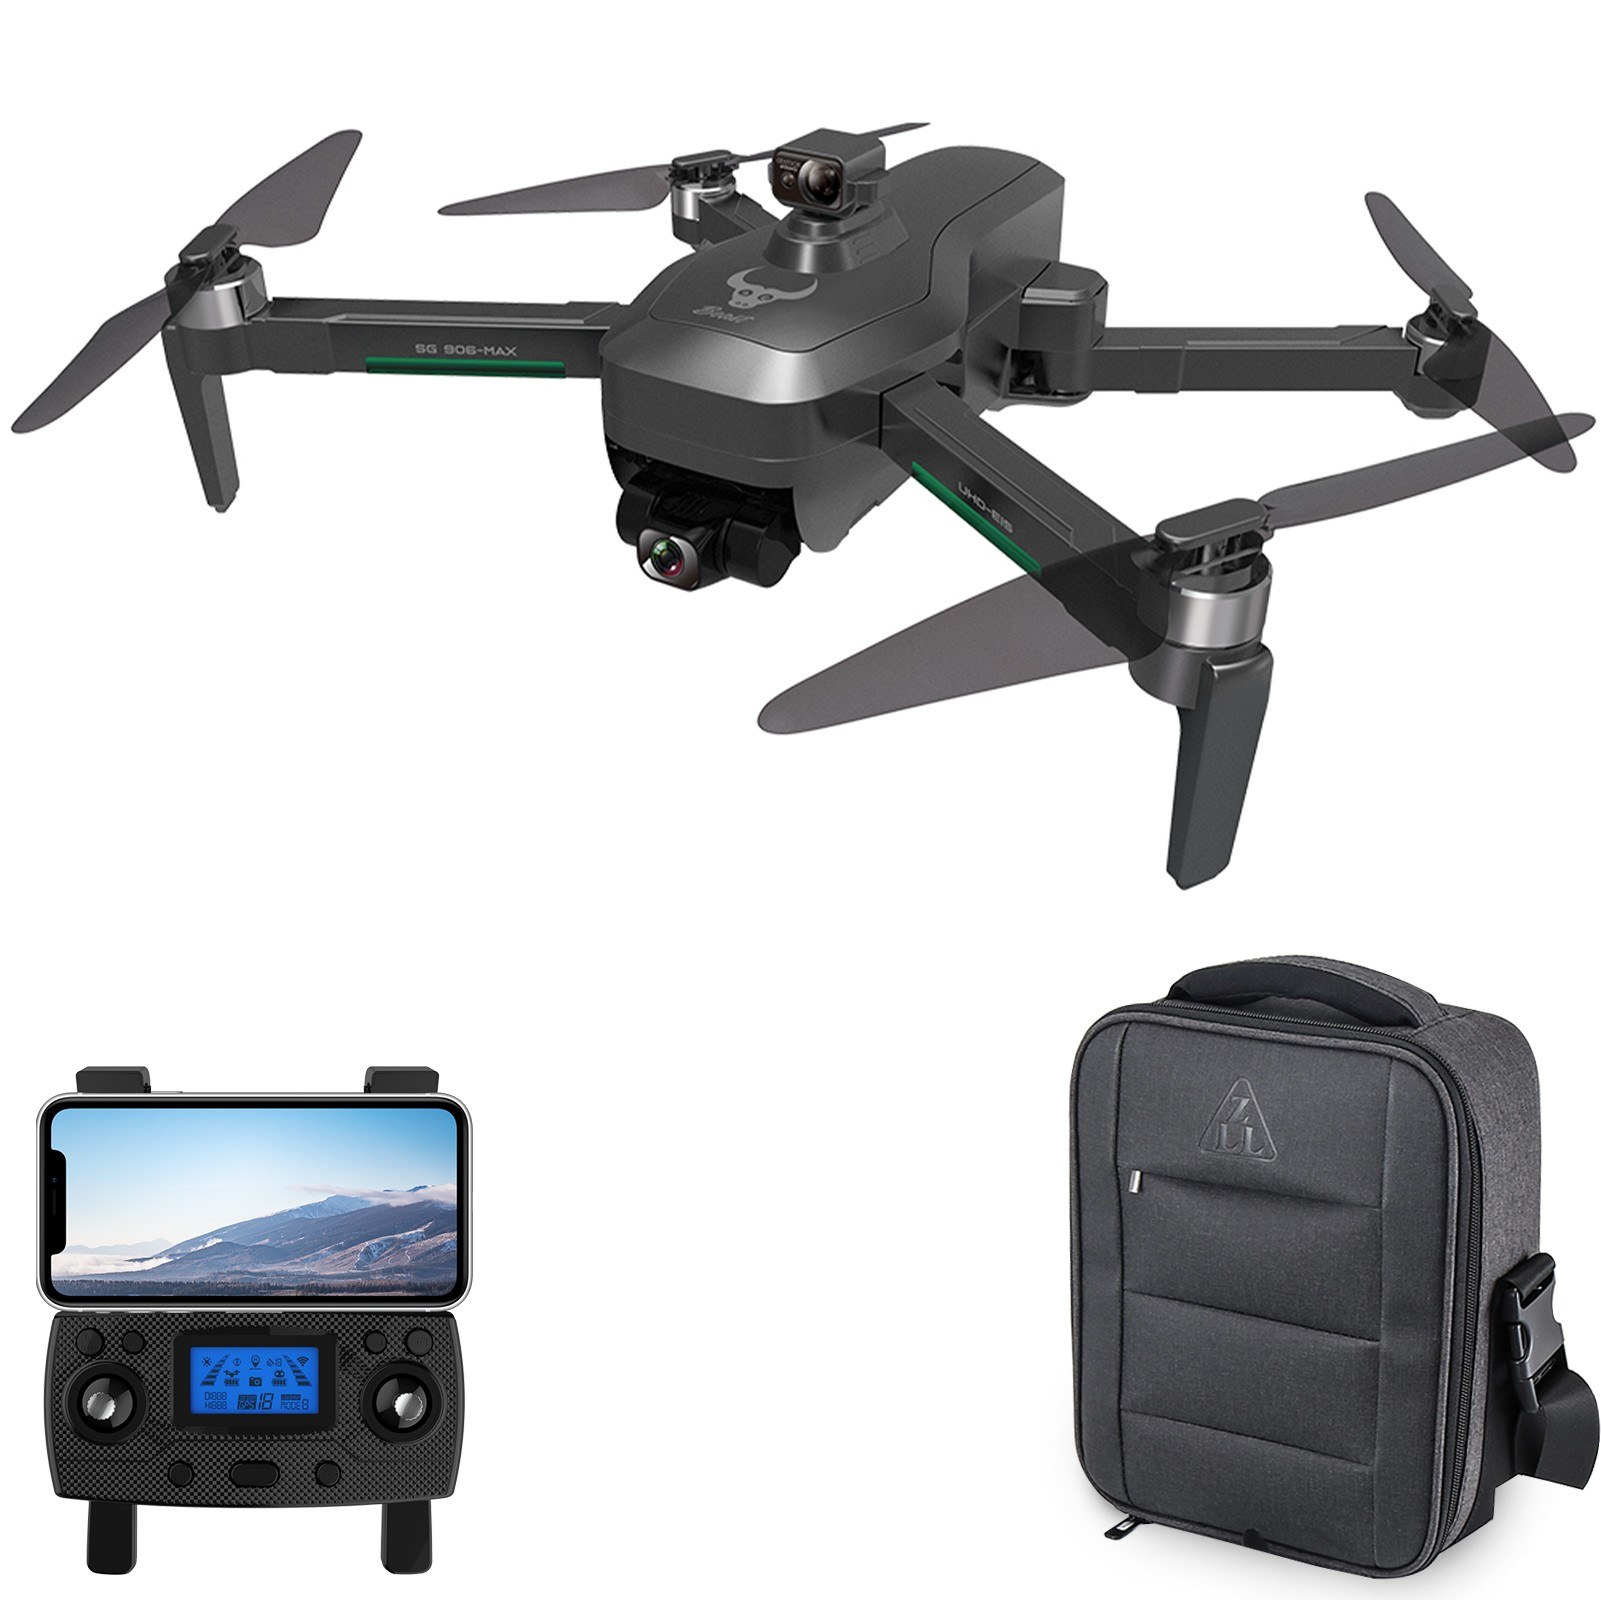 tomtop.com - 55% OFF ZLRC Beast3 SG906 MAX 5G Wifi FPV GPS RC Drone 4K Camera, Limited Offers $191.99